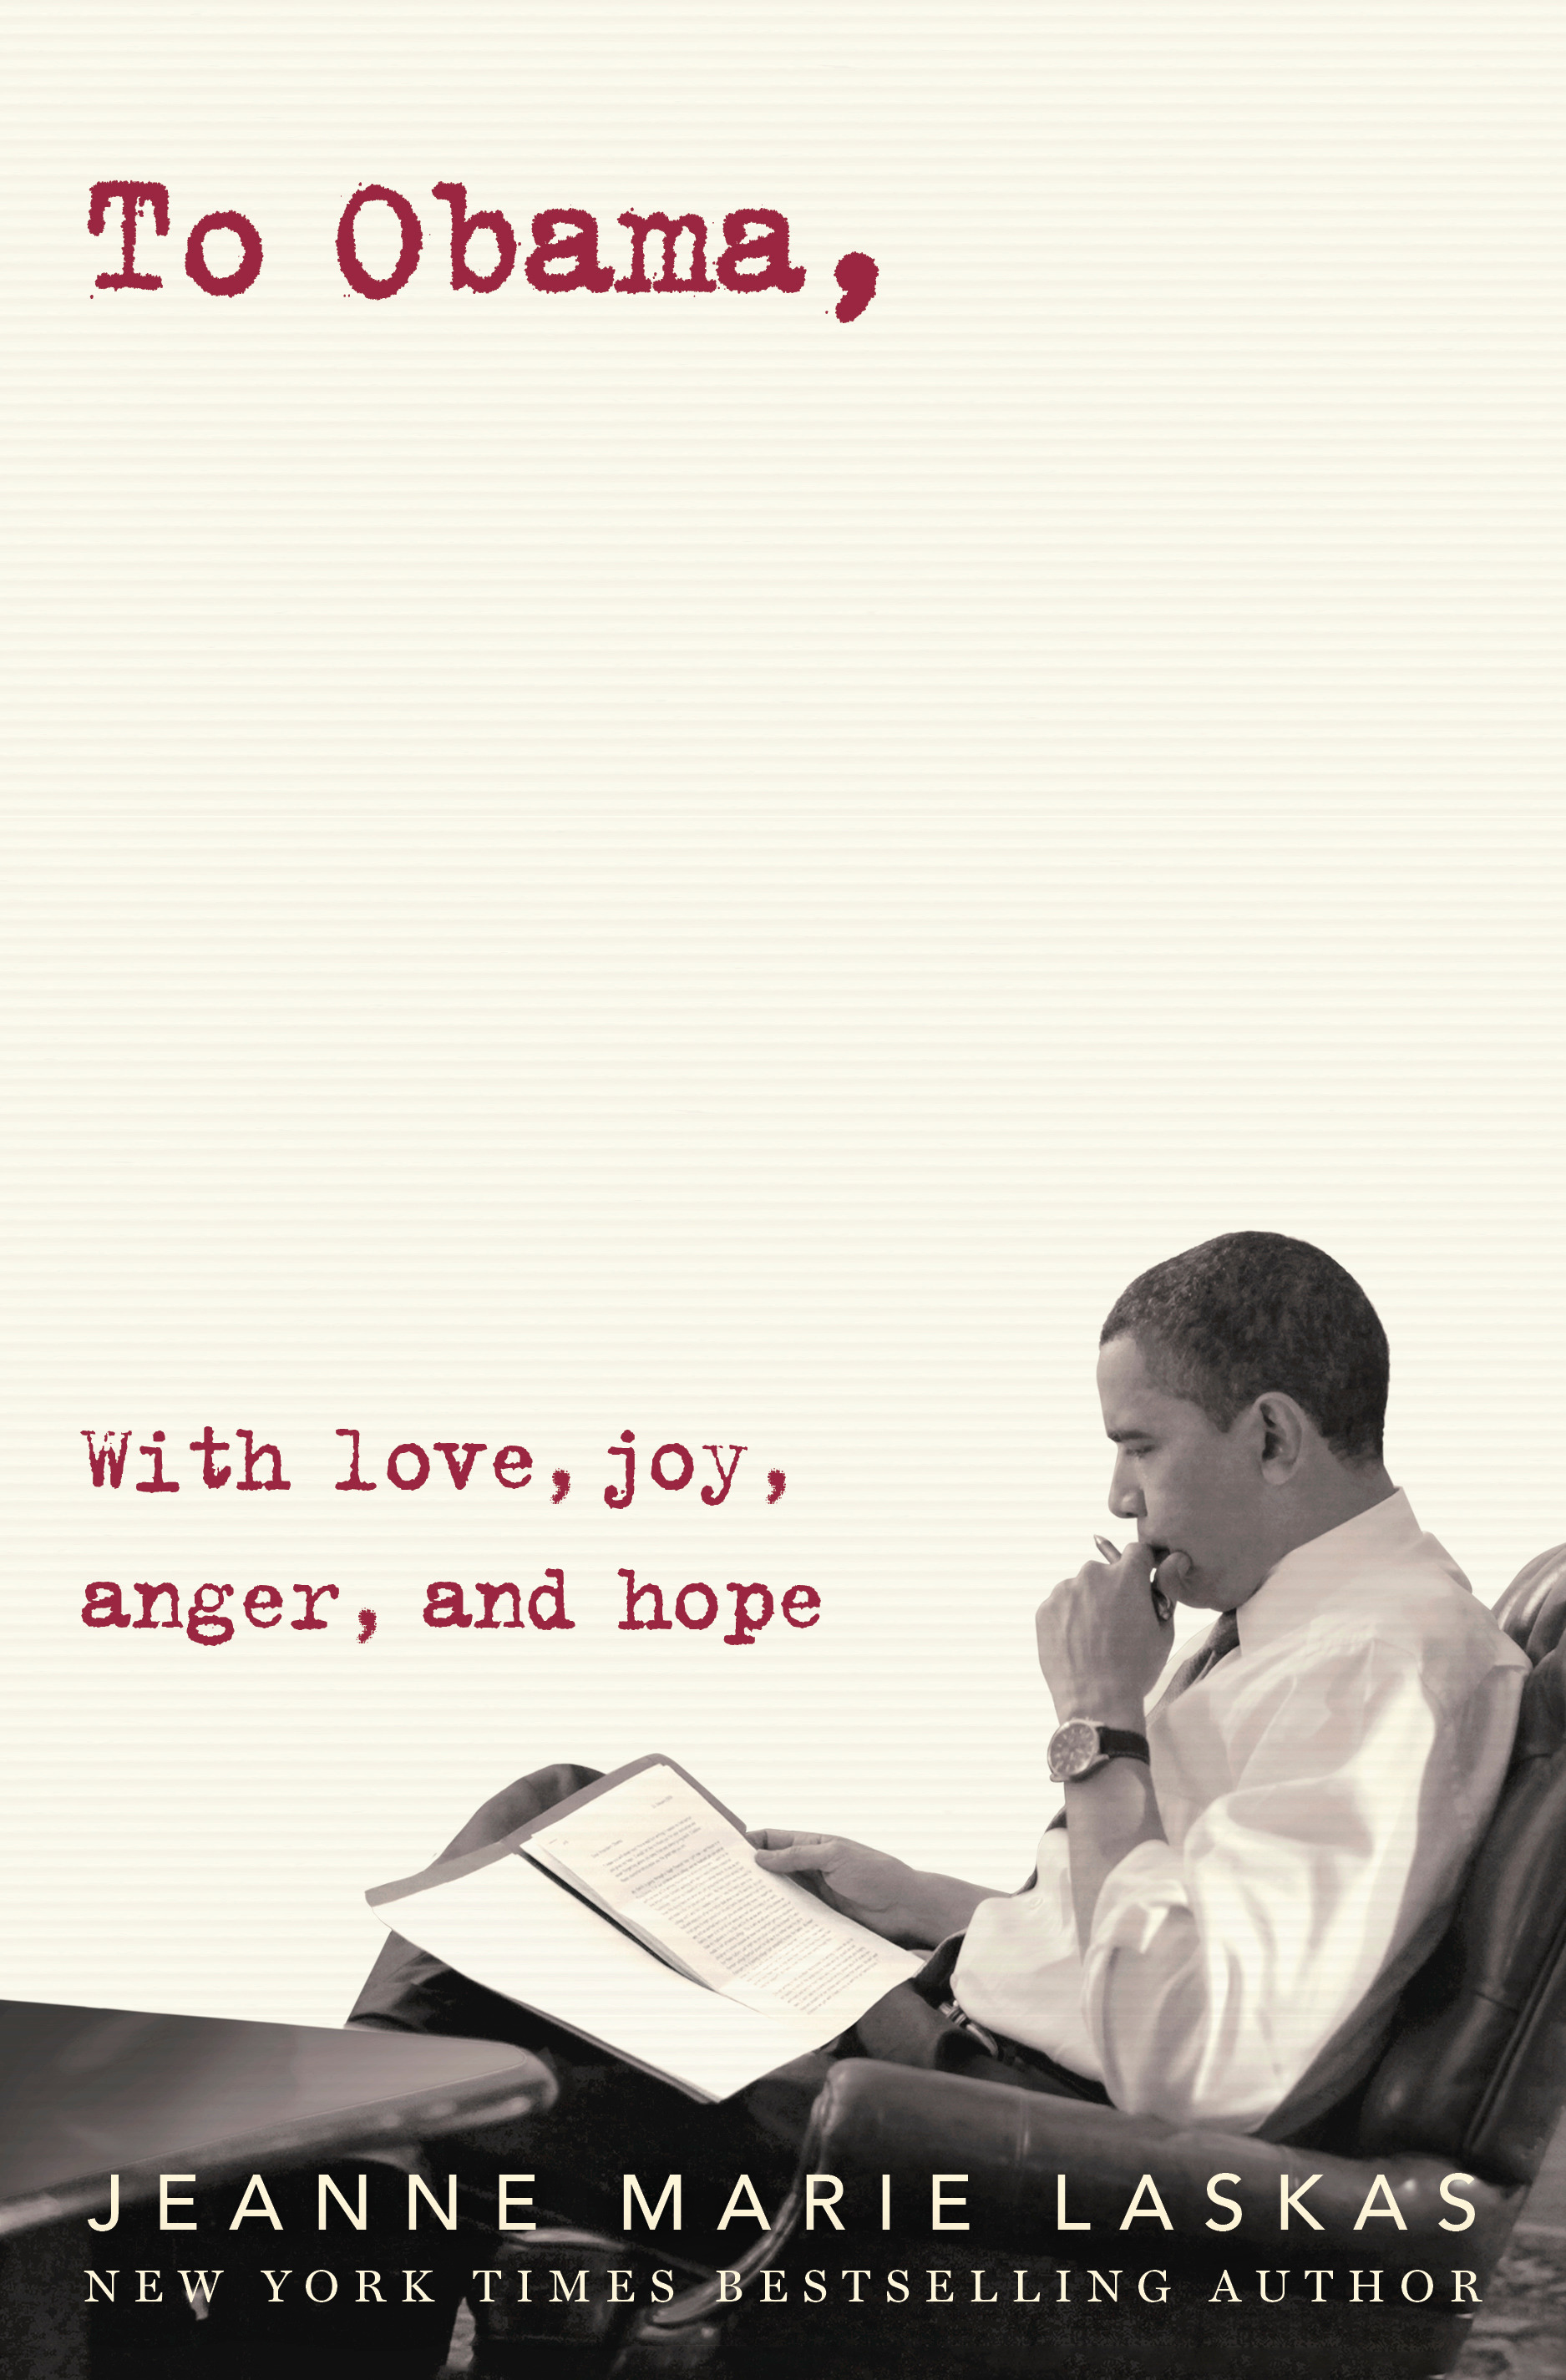 Book Launch: TO OBAMA: With Love, Joy, Anger, and Hope by Jeanne Marie Laskas